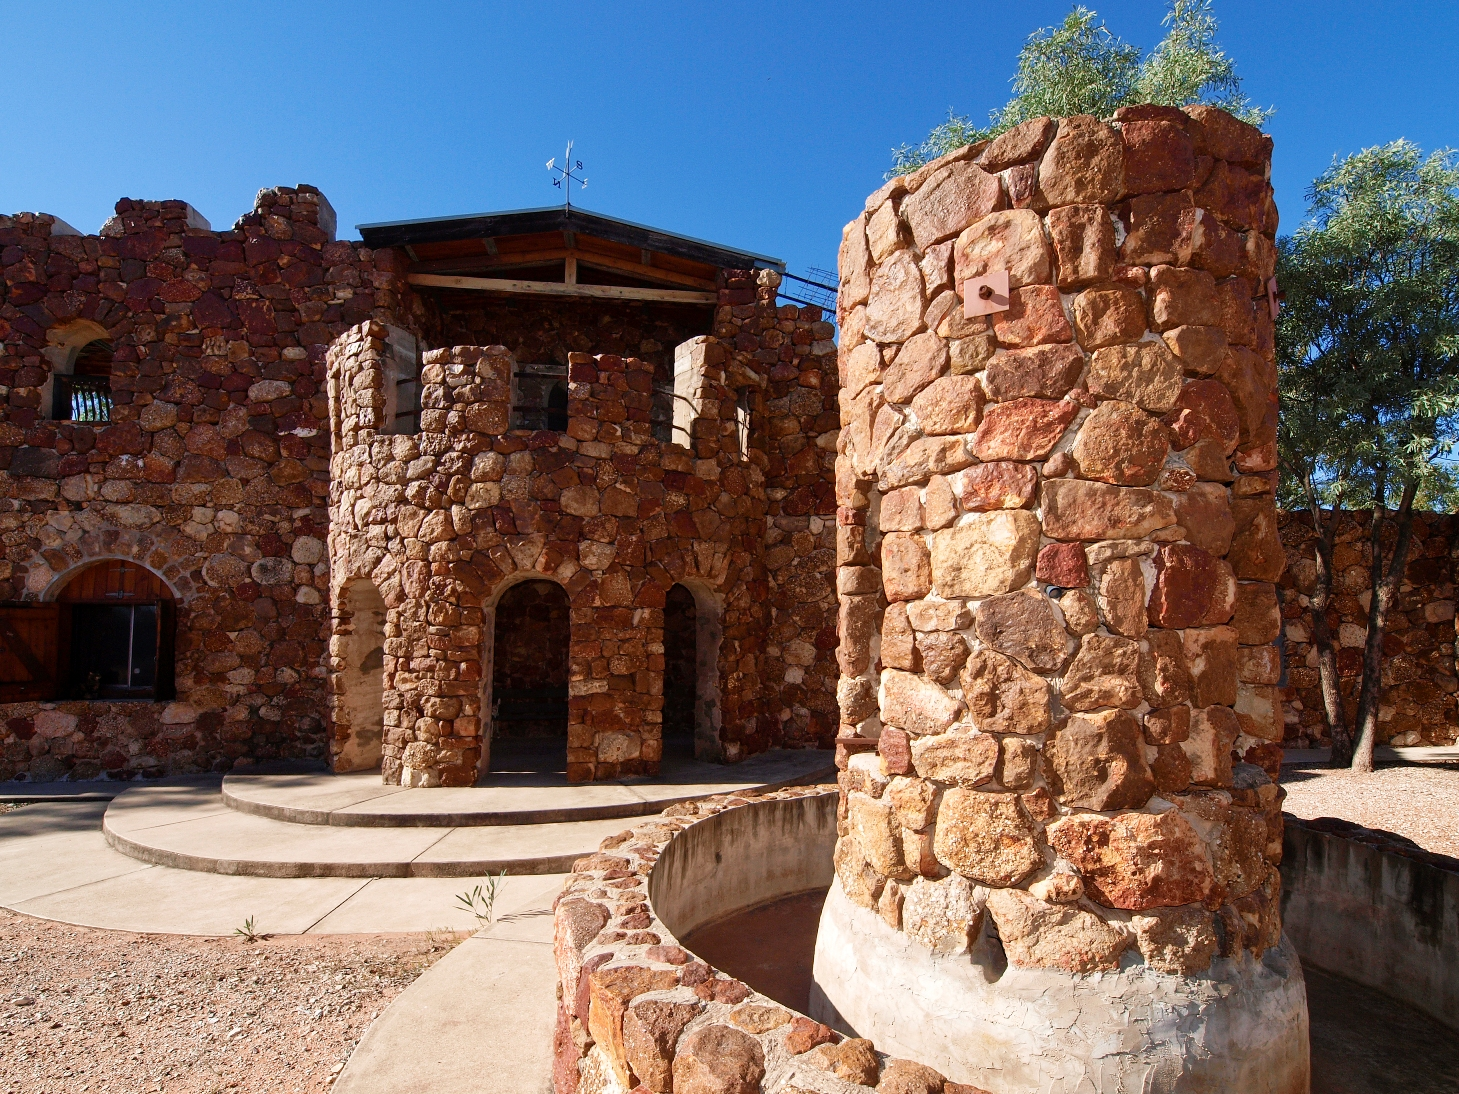 Amigos Castle, Lightning Ridge, New South Wales